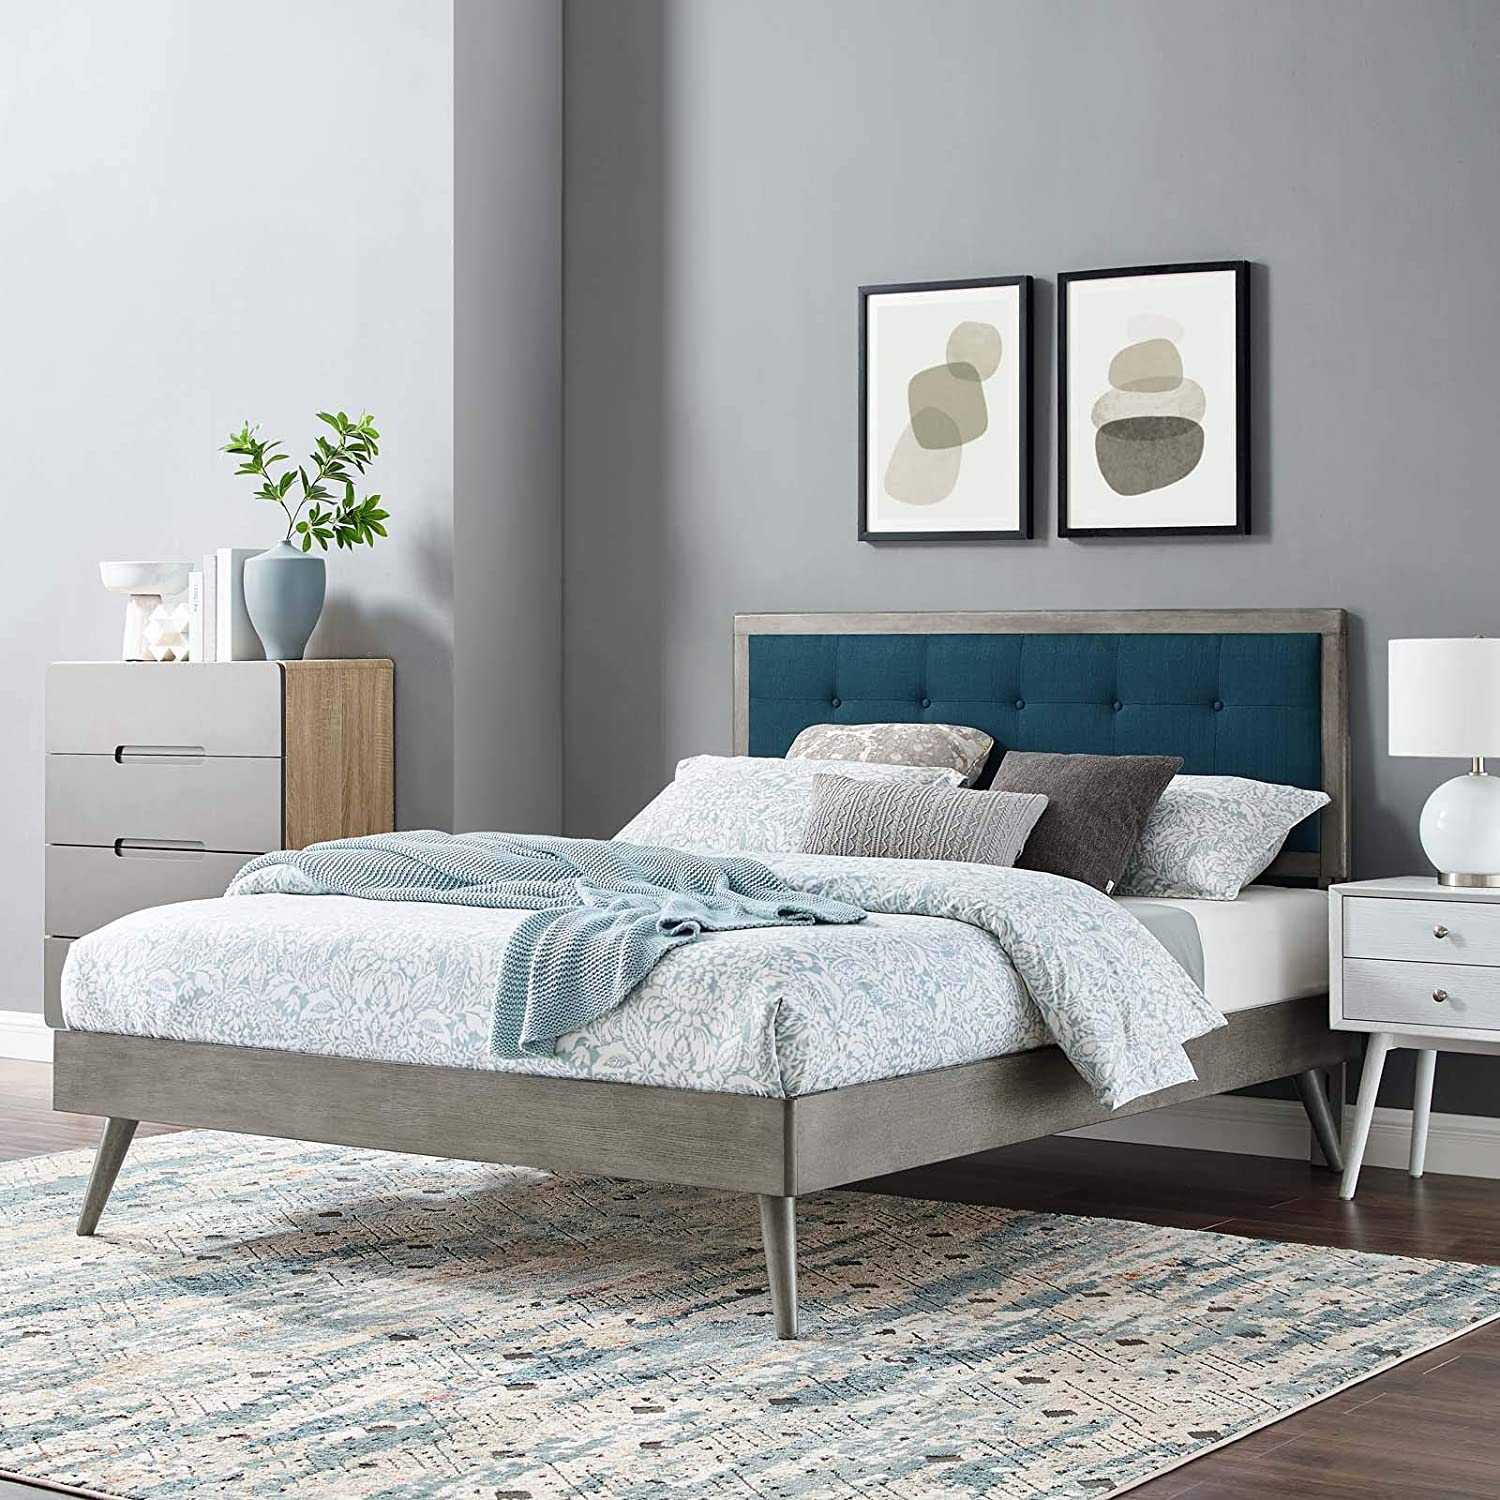 Modway Willow Wood Twin Platform Bed in Gray Azure with Splayed Legs, Single